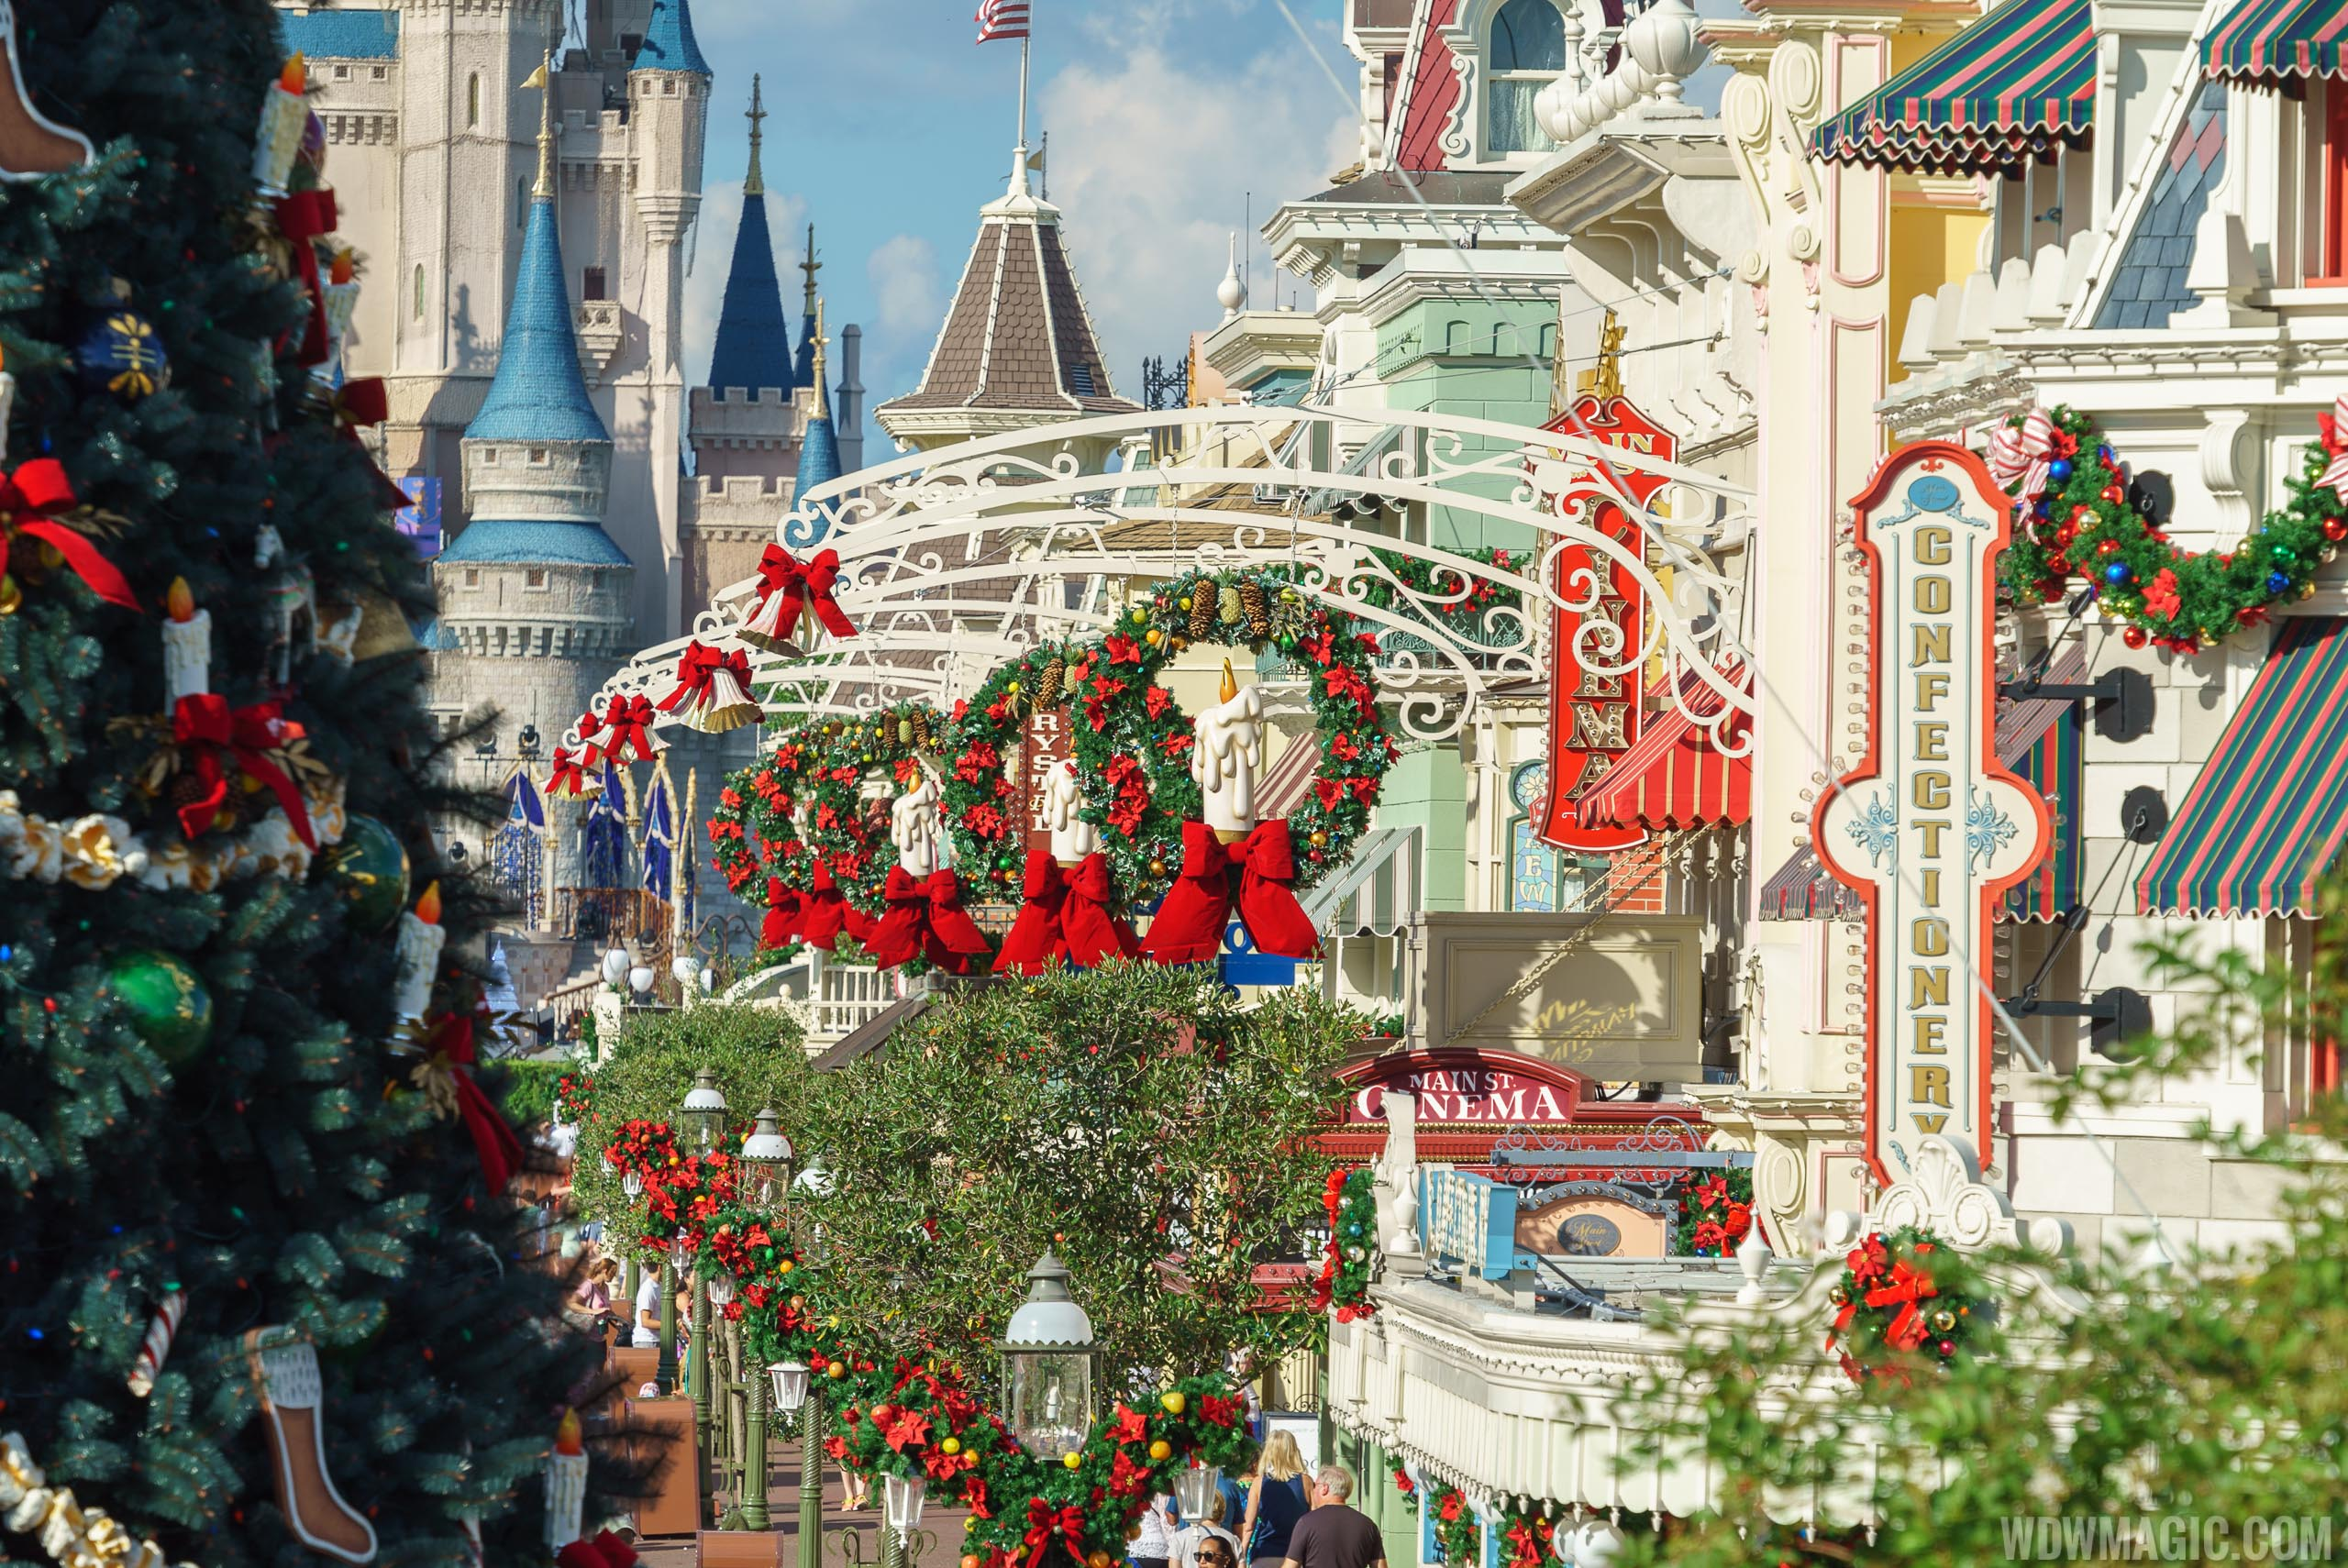 photos the magic kingdoms 2017 christmas holiday decorations - When Does Disney World Decorate For Christmas 2017